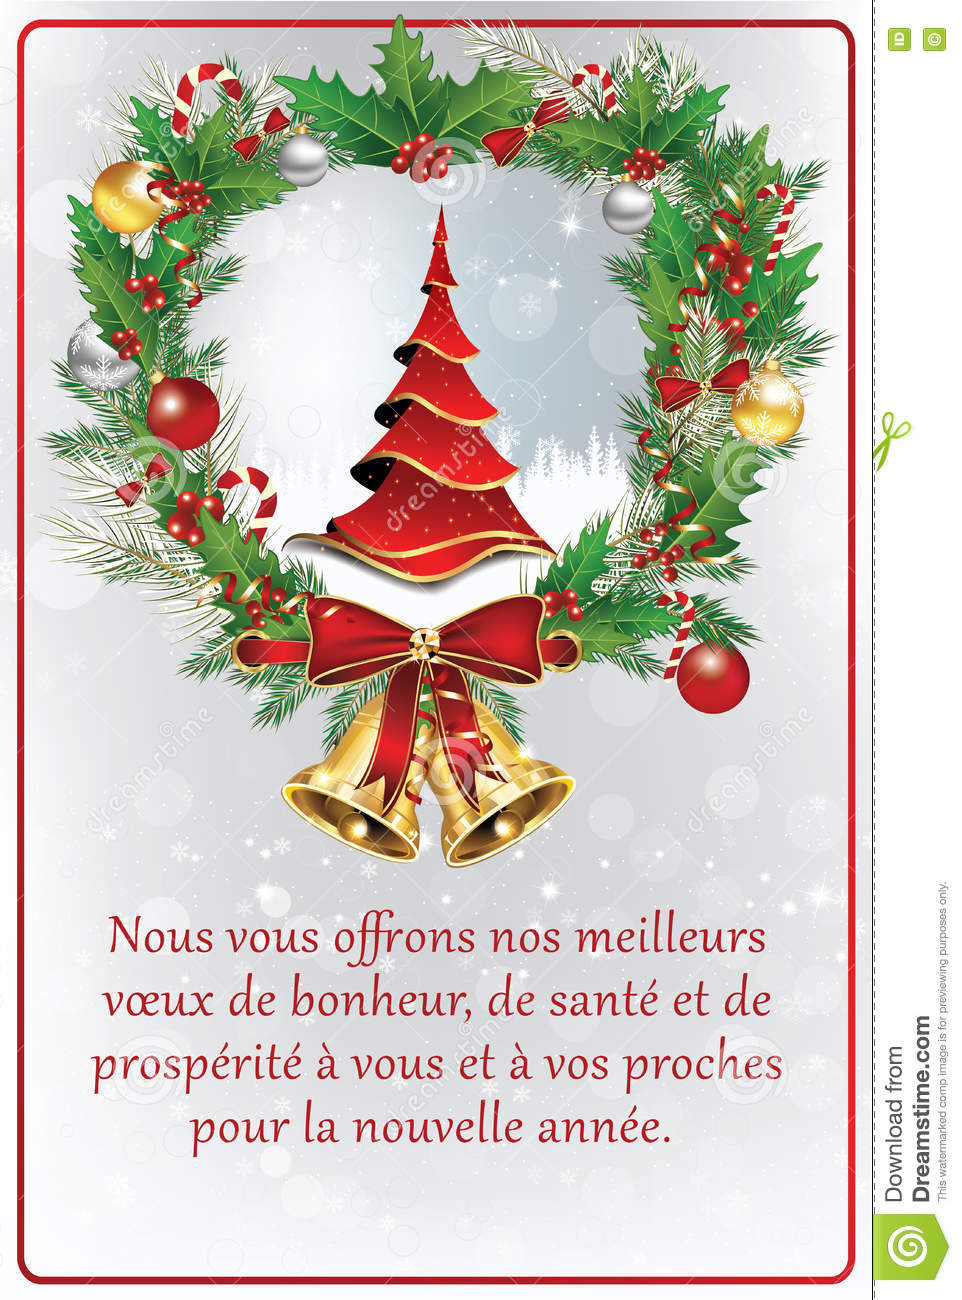 French business greeting card for new year stock image image royalty free stock photo download french business greeting card for magicingreecefo Image collections